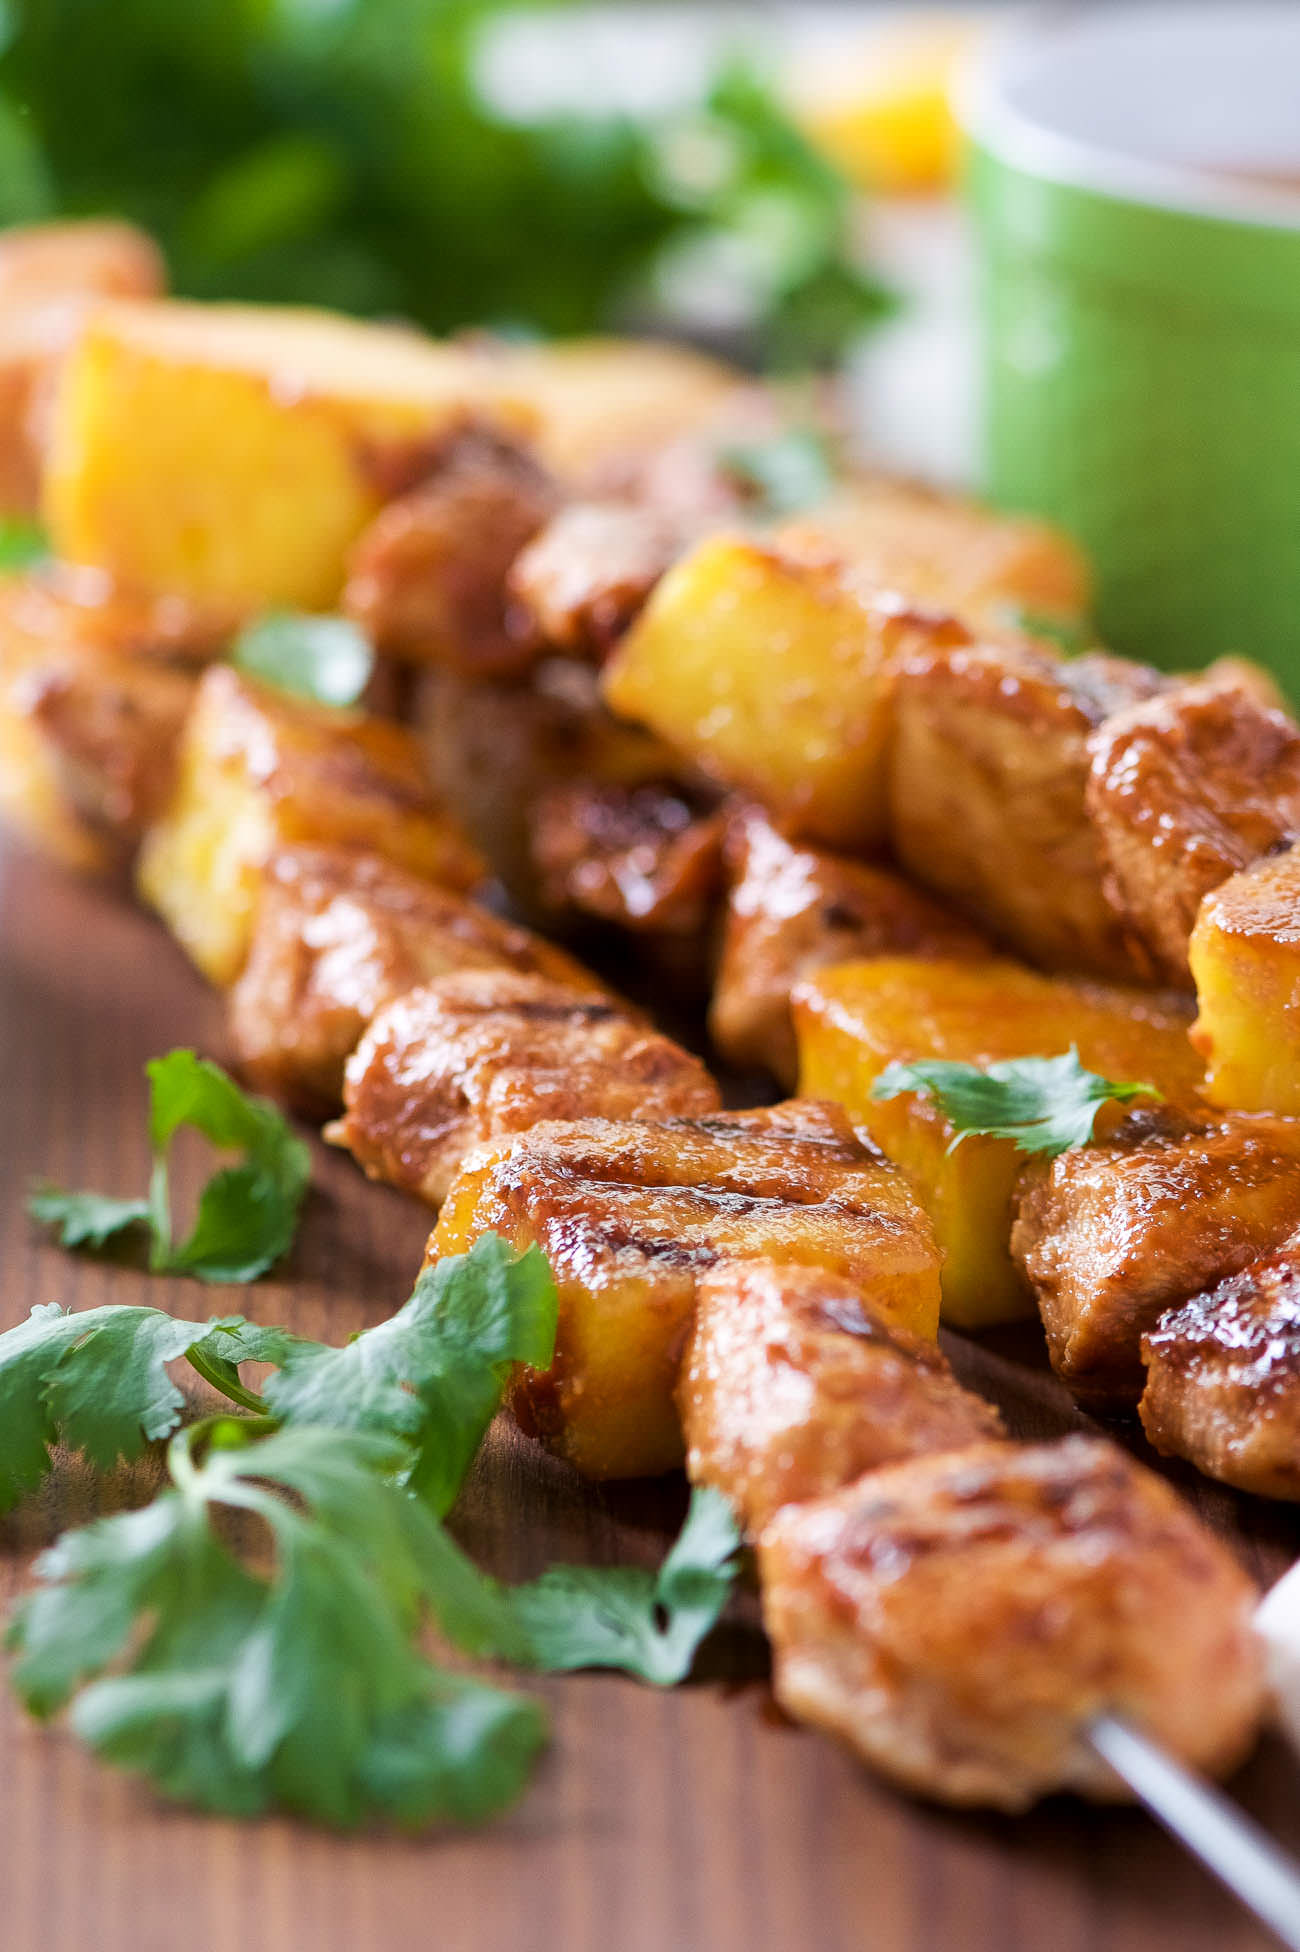 Grilled Huli Huli Chicken Kabobs - Juicy pineapple and tender chicken coated in a sweet and savory glaze then grilled to perfection! The perfect summertime, quick dinner!